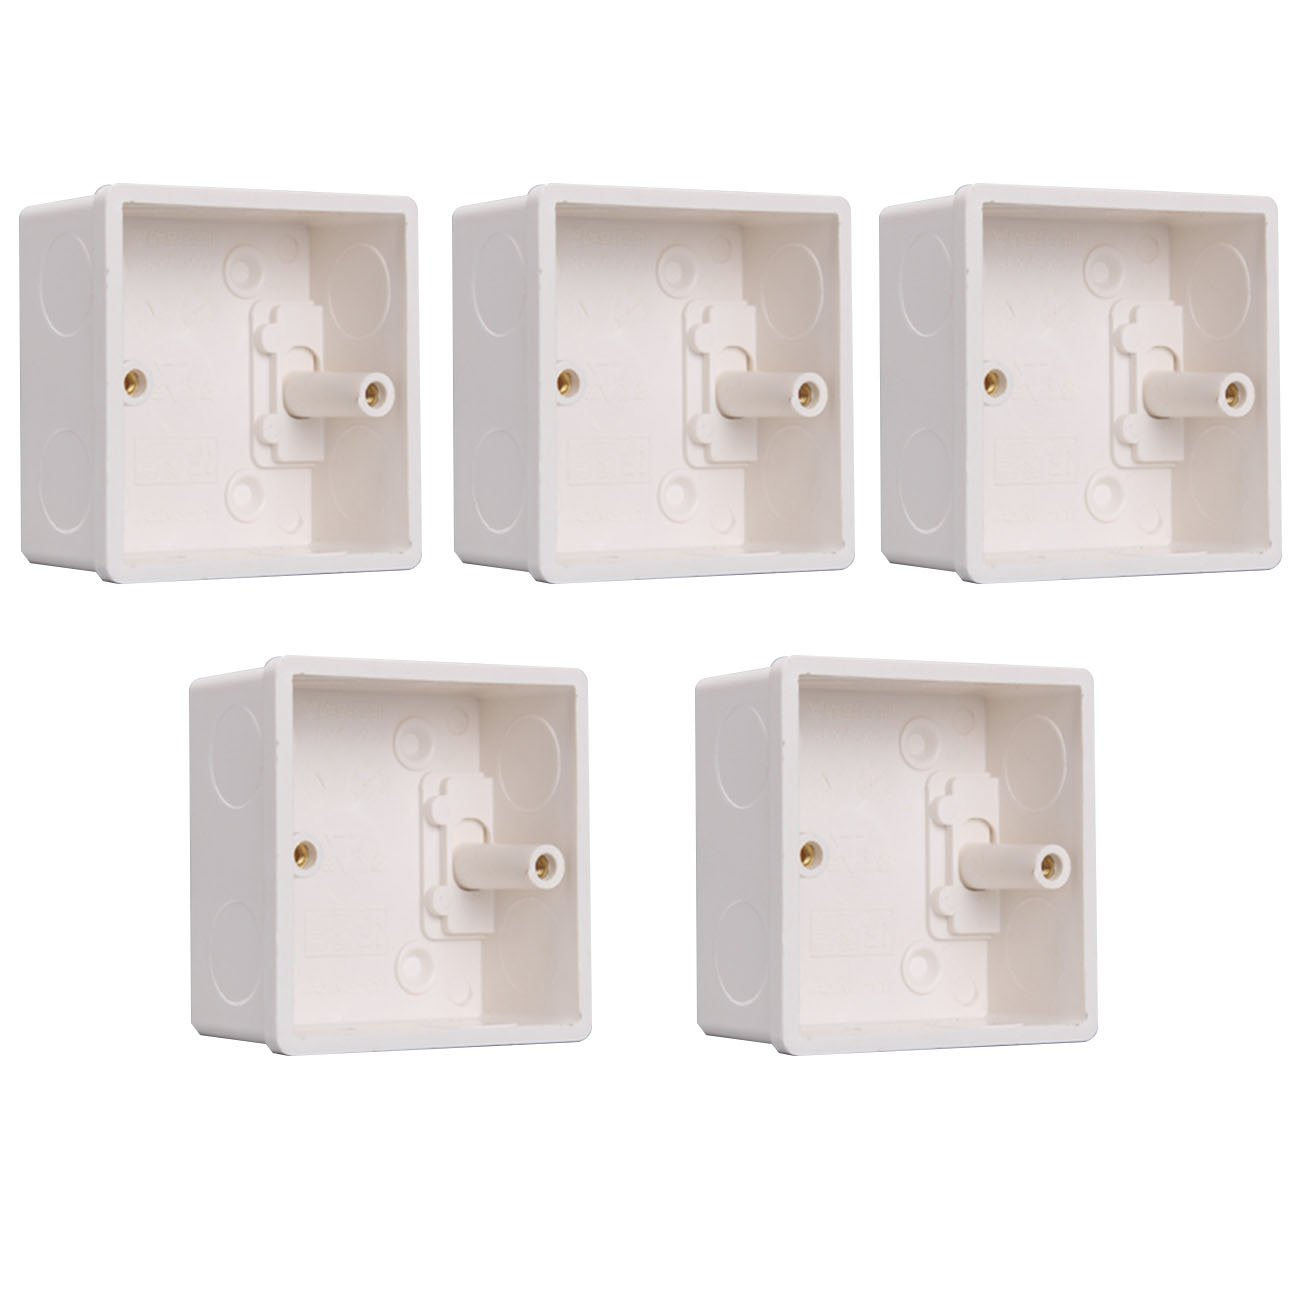 86x86x40mm PVC Junction Box, Recessed Electrical/Outlet Mounting Box, Flush-Type Wall Mount Cassette for Switch Socket Base